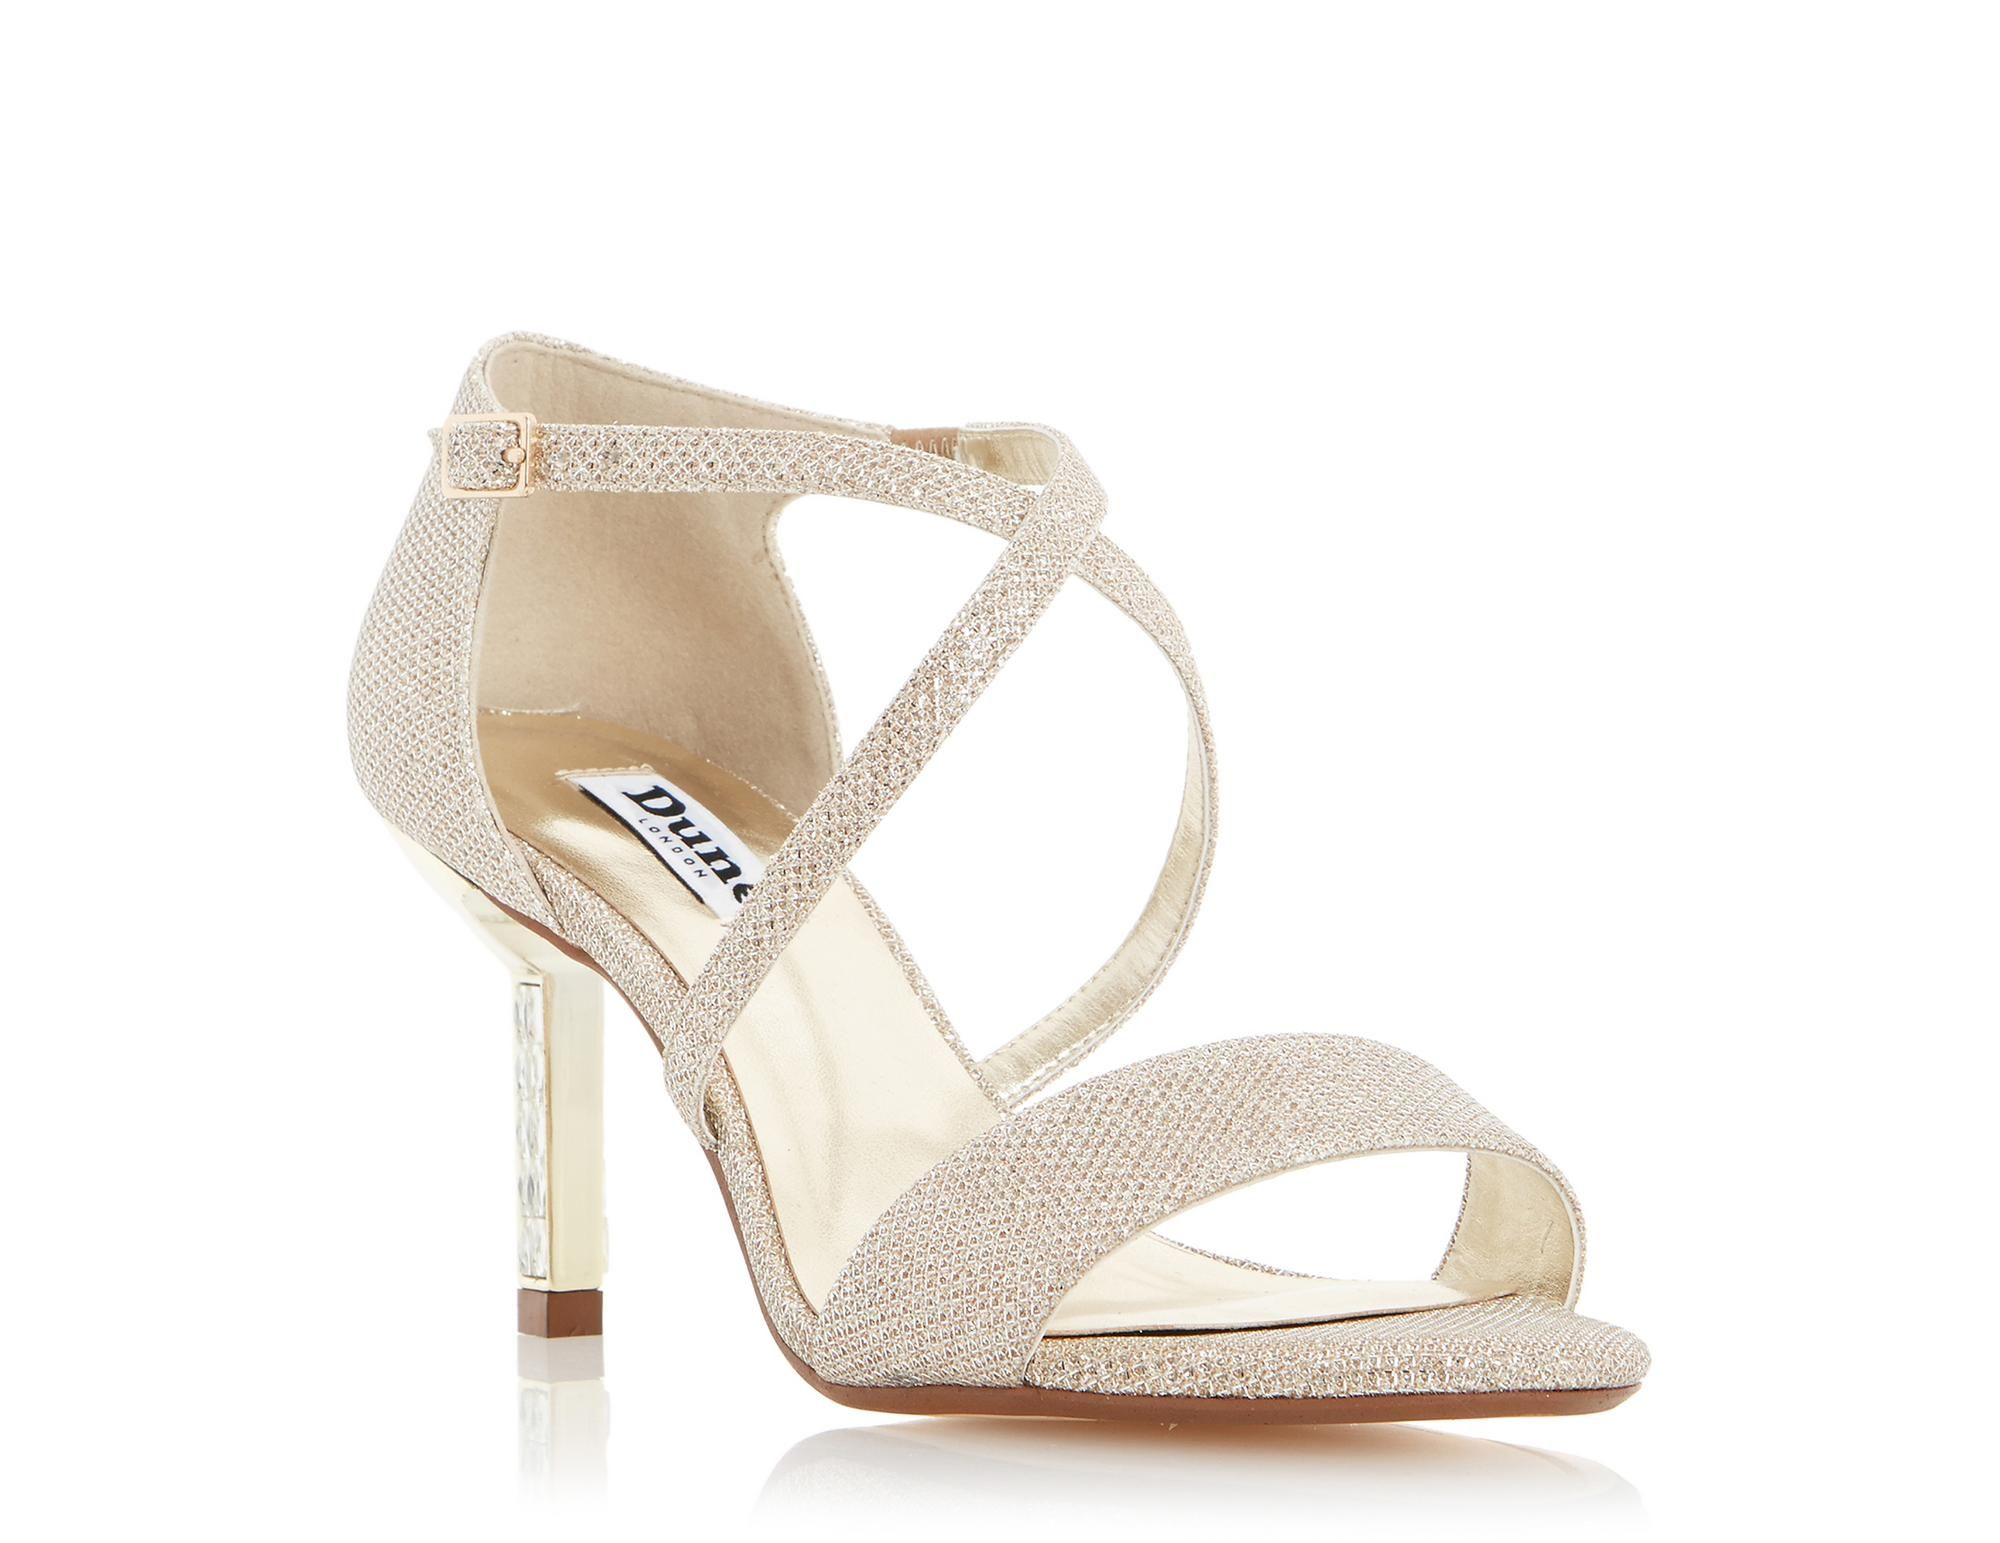 Black dress sandals medium heel - Channel Old School Glamour In This Cross Strap Mid Heel Party Sandal Featuring A